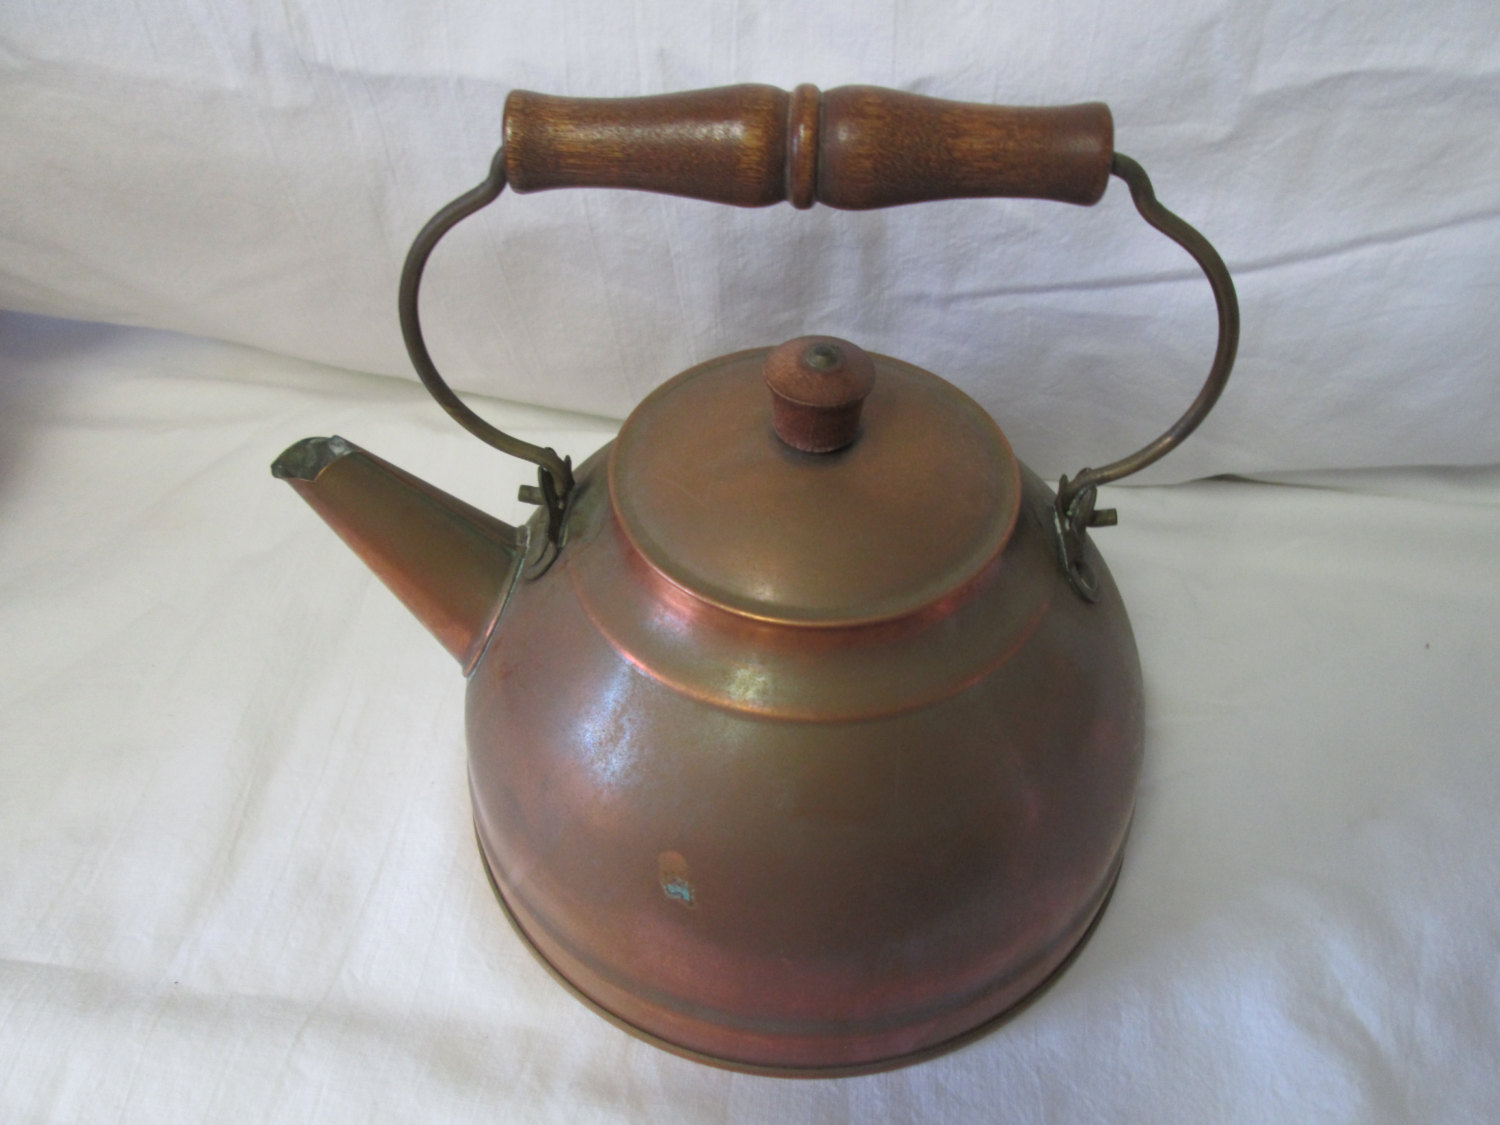 Antique copper tea kettle teapot tea pot stove top copper with wooden handle Revere ware all copper